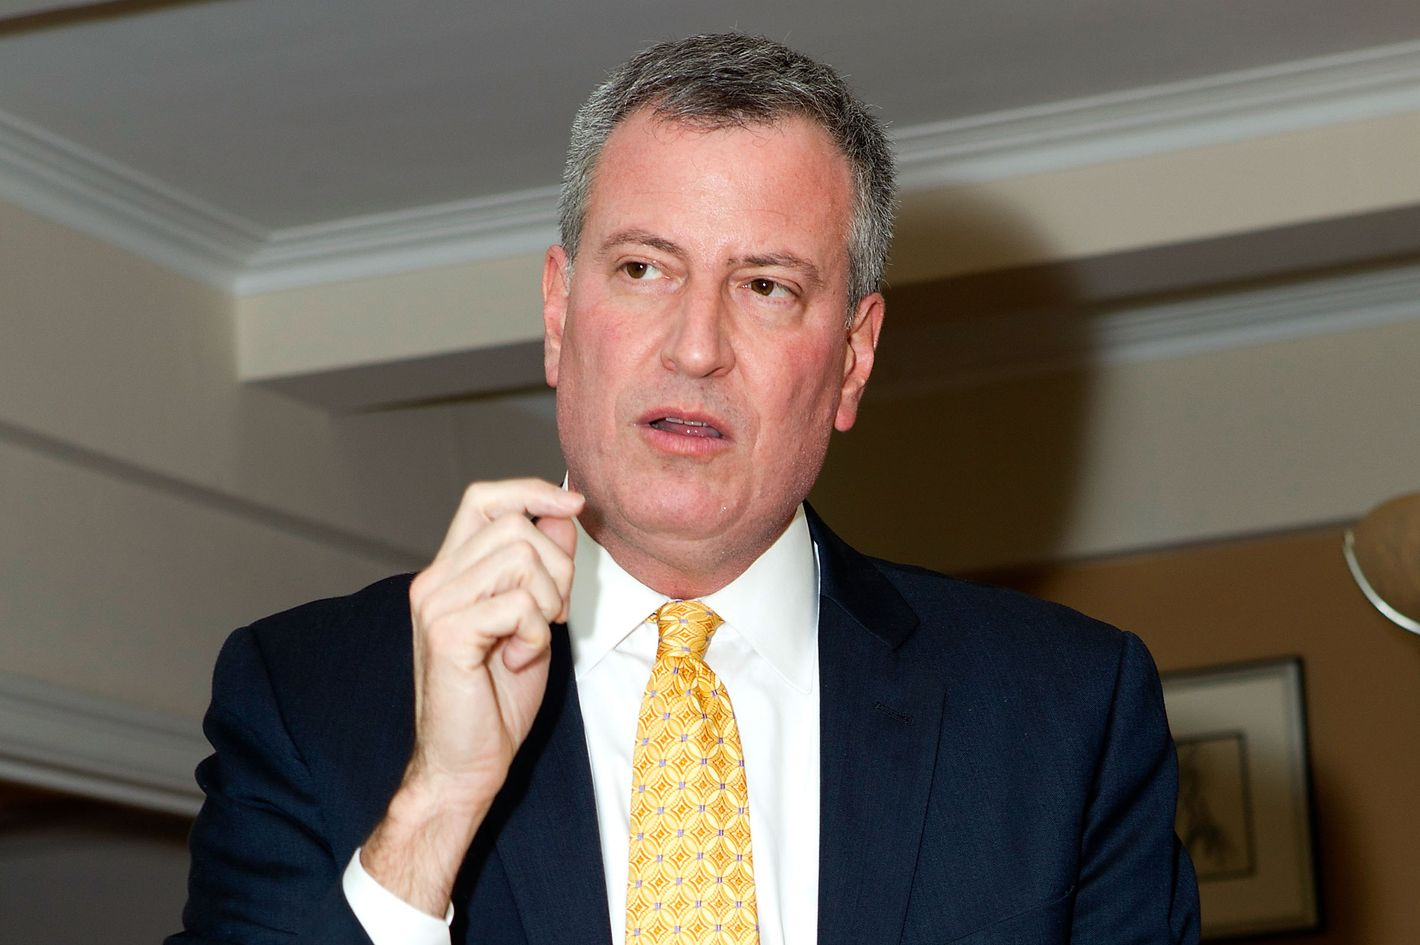 NEW YORK, NY - JANUARY 03:  Bill de Blasio attends the Bill De Blasio fundraiser on January 3, 2013 in New York City.  (Photo by Steve Mack/Getty Images)